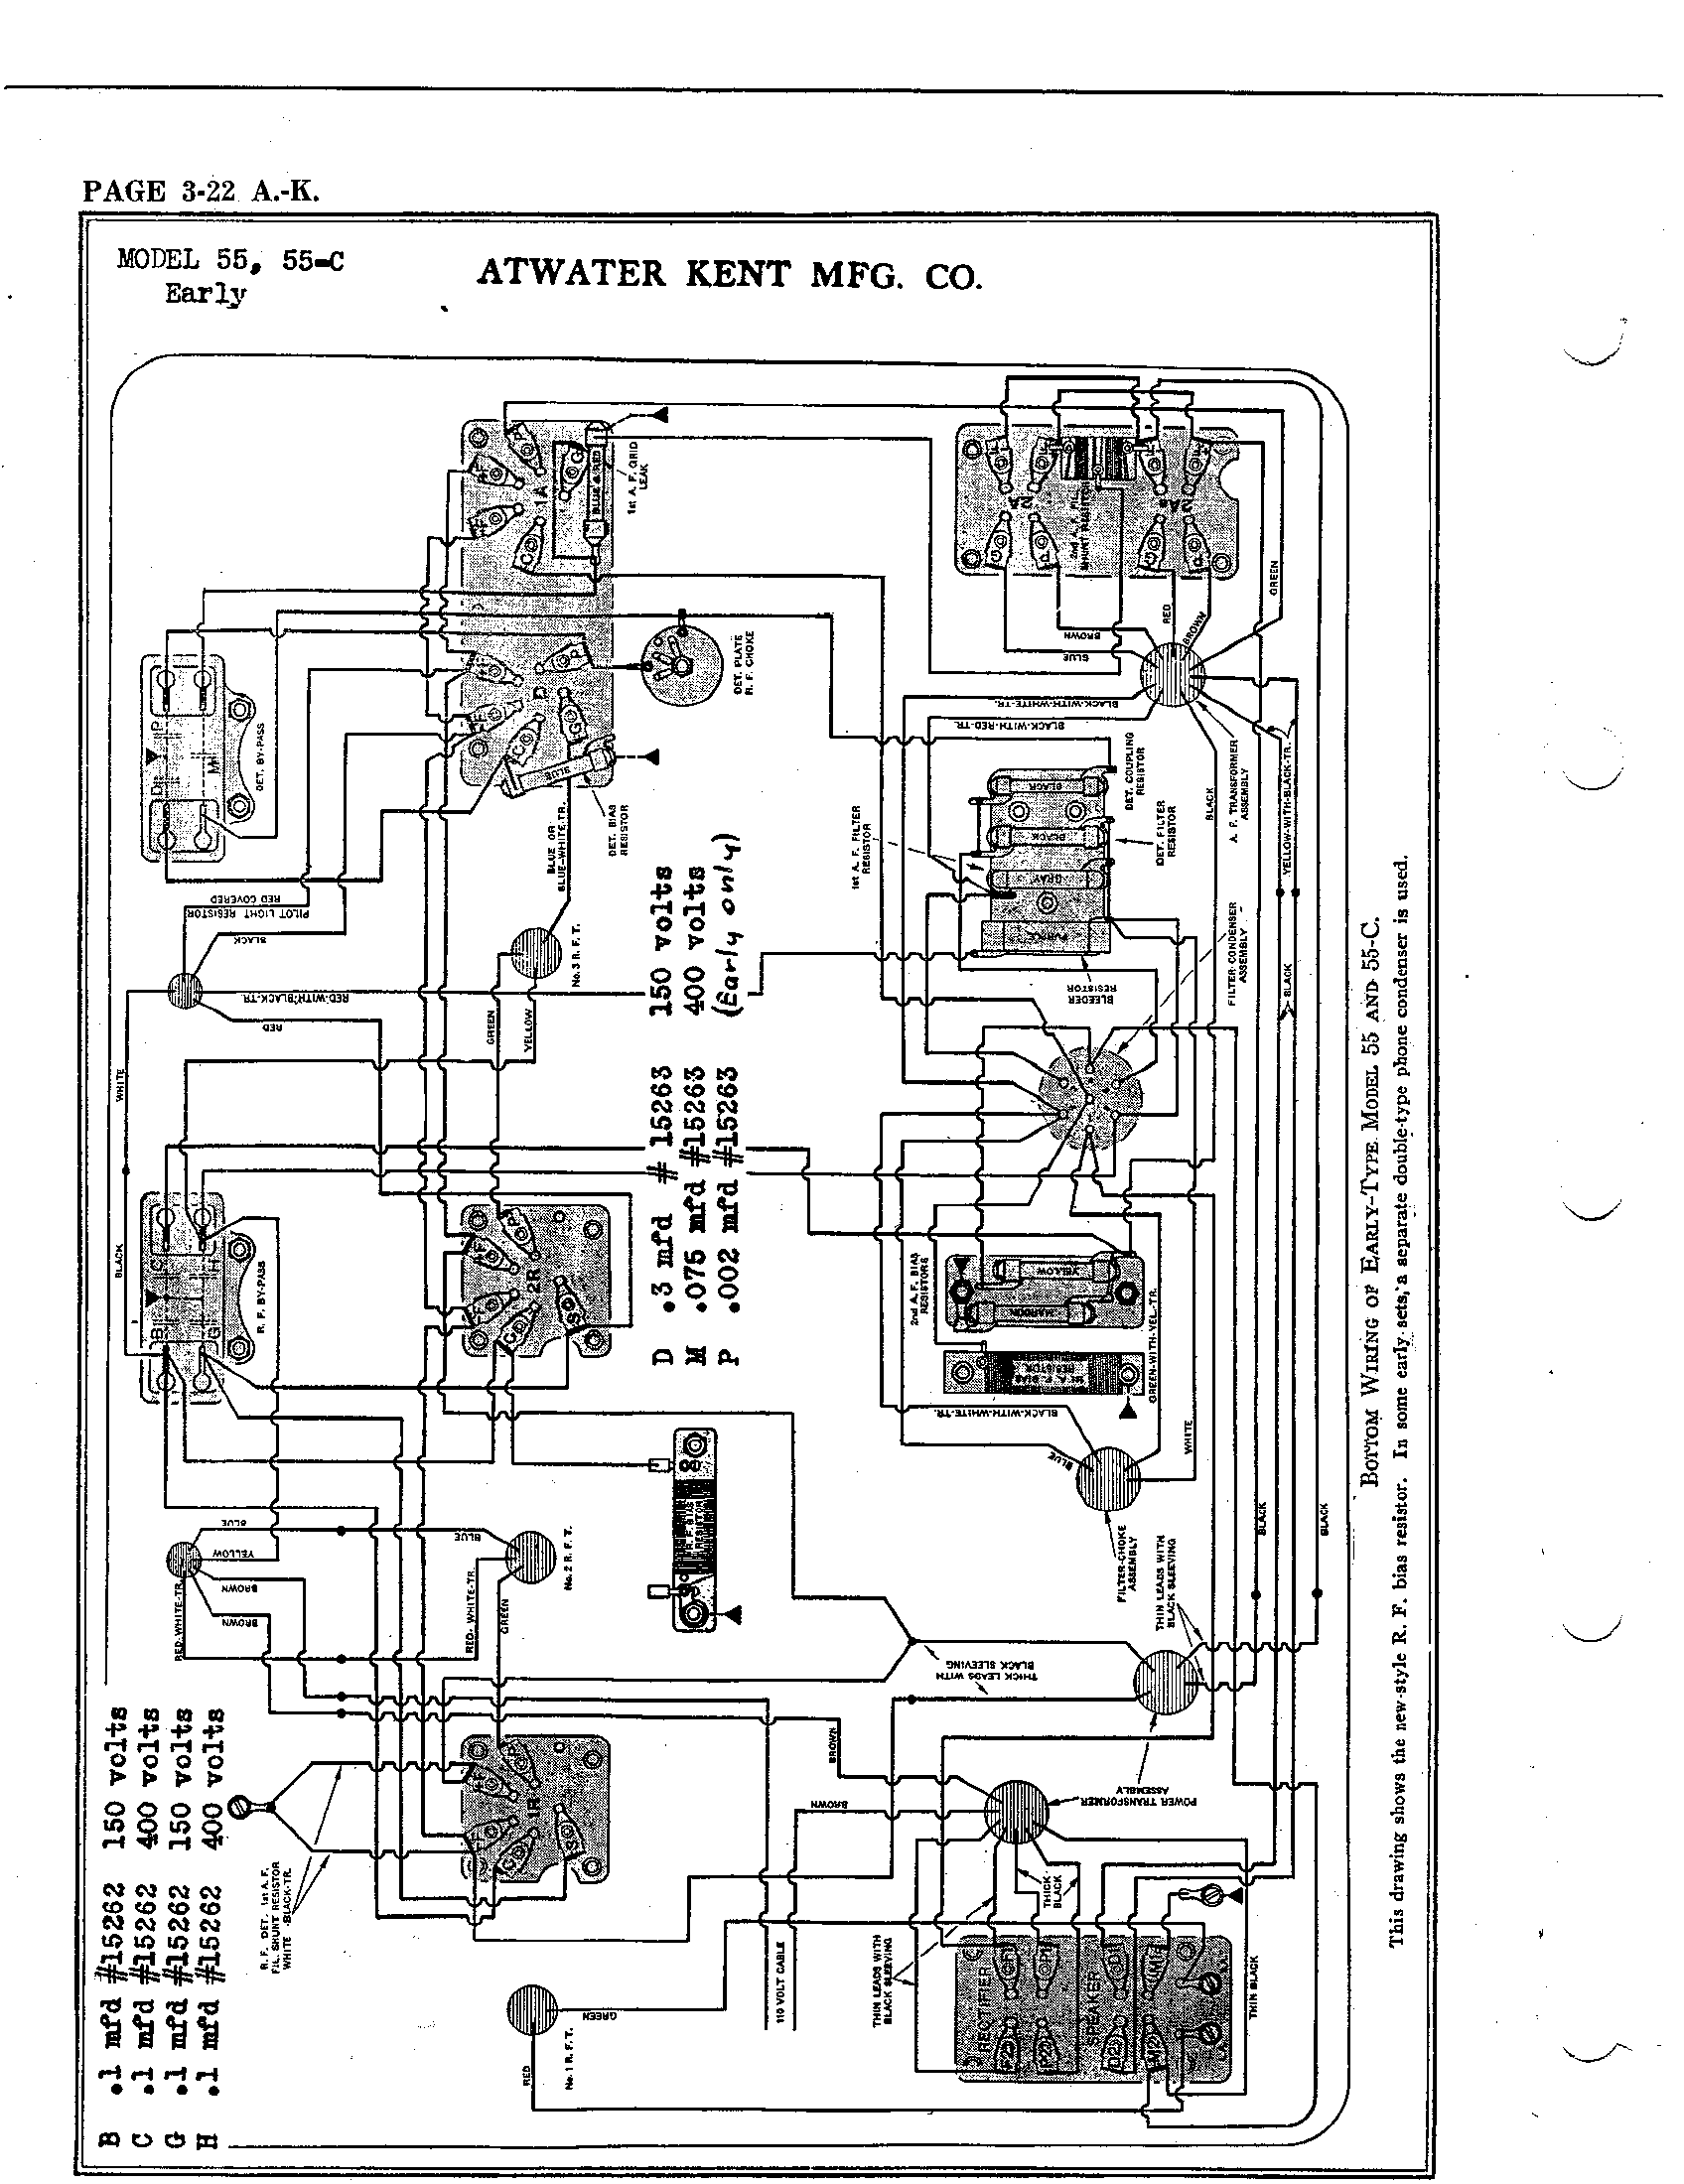 Wiring Diagram For Wheel Horse 211 3 Wheel Horse Ignition